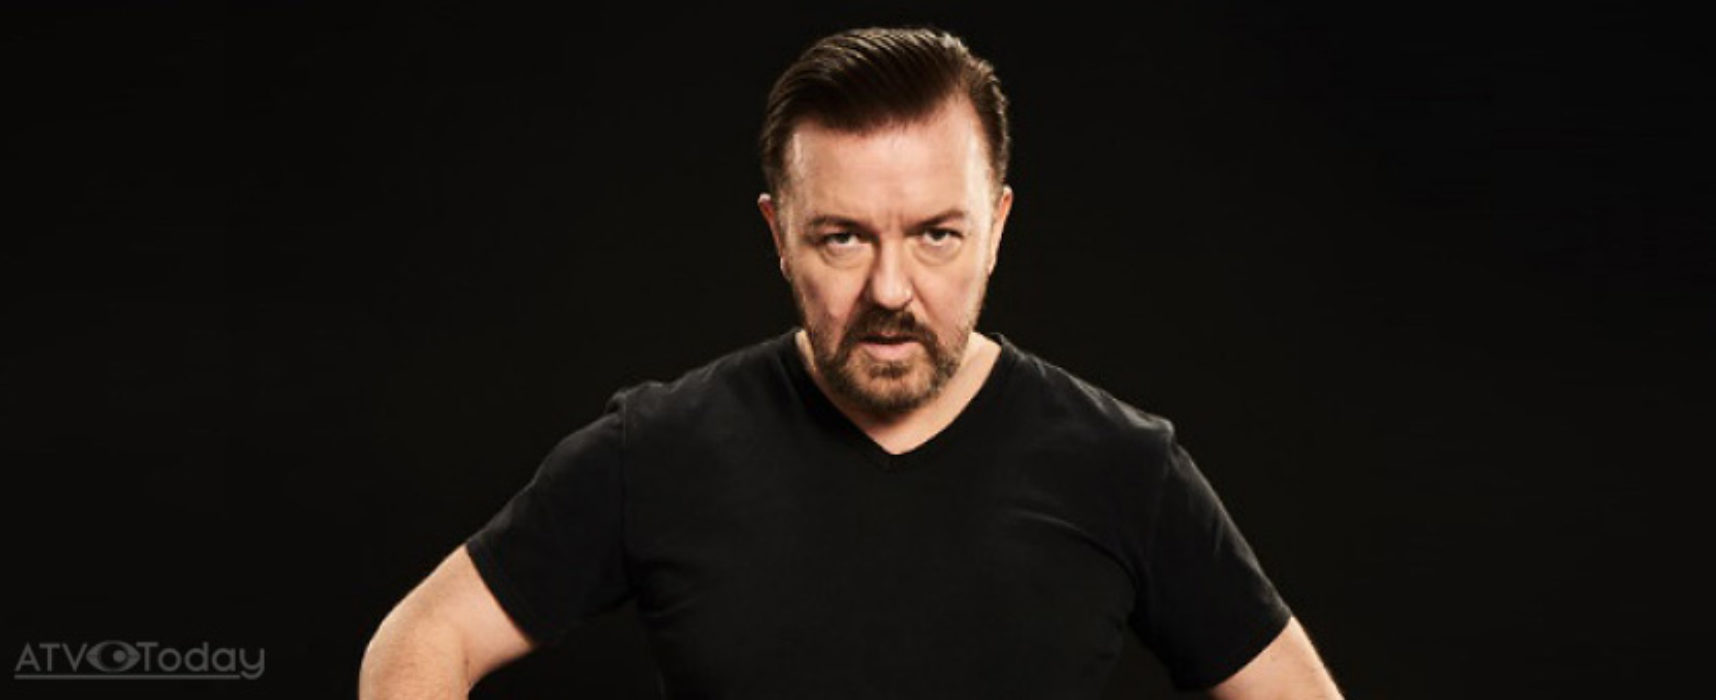 Ricky Gervais to star in After Life for Netflix